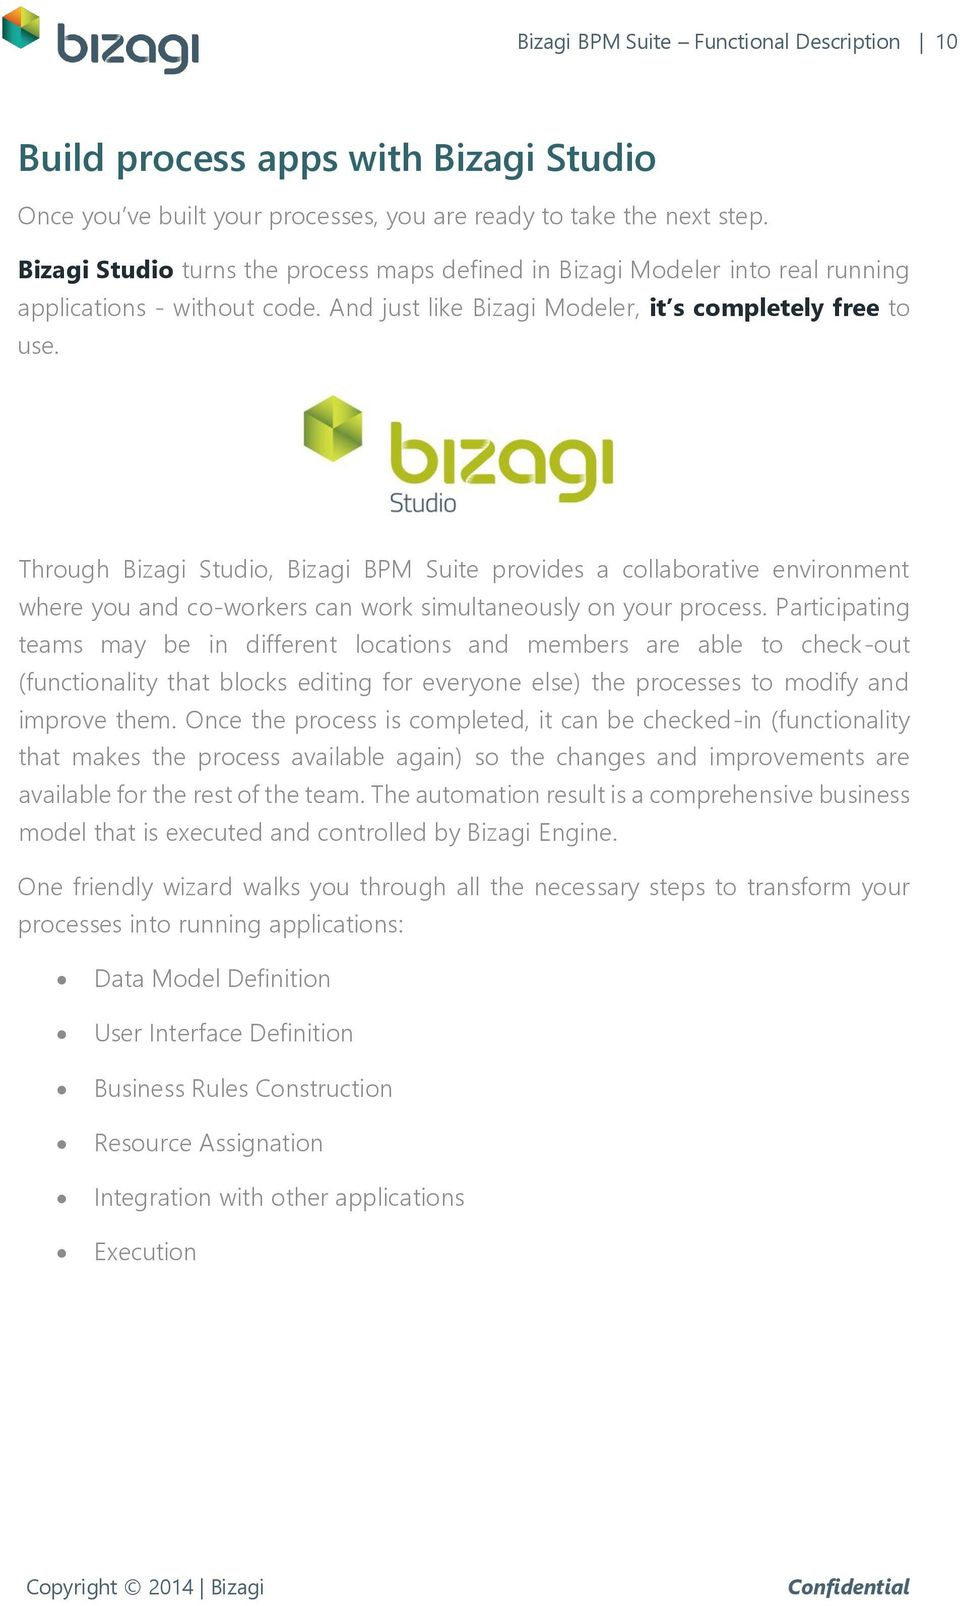 Through Bizagi Studio, Bizagi BPM Suite provides a collaborative environment where you and co-workers can work simultaneously on your process.